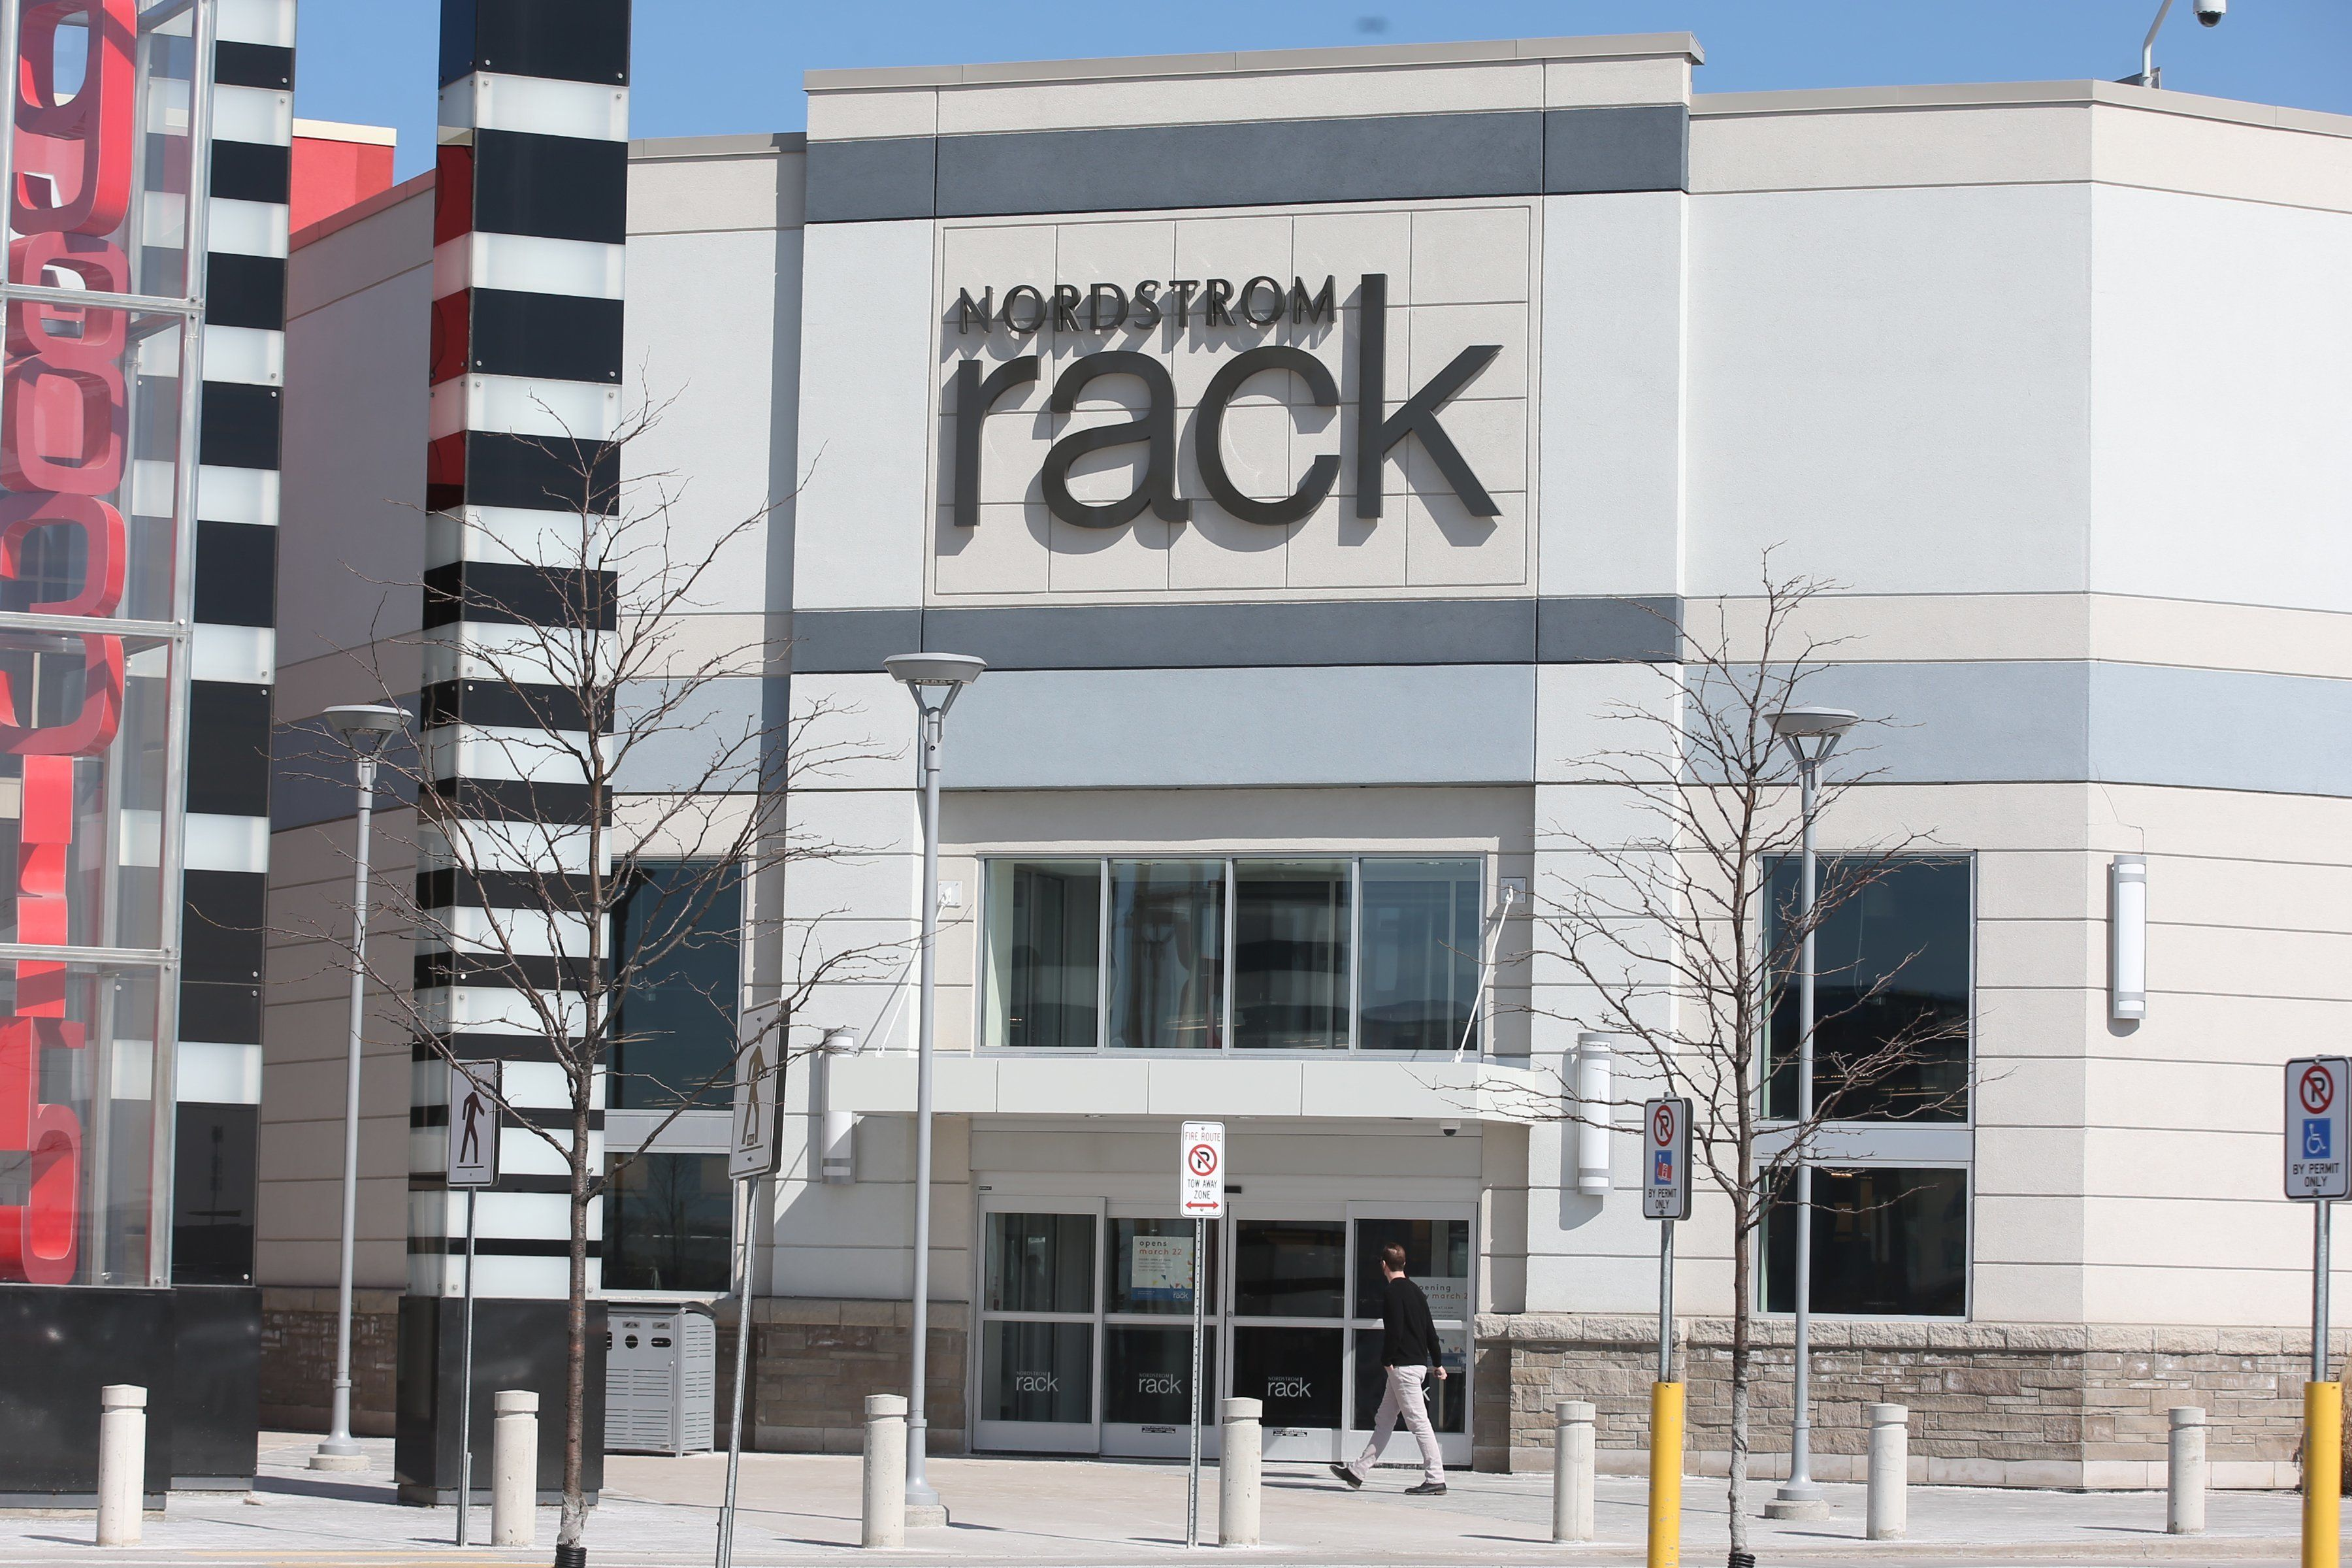 Nordstrom Rack President Apologizes After Store Accuses Three Black Men Of Theft